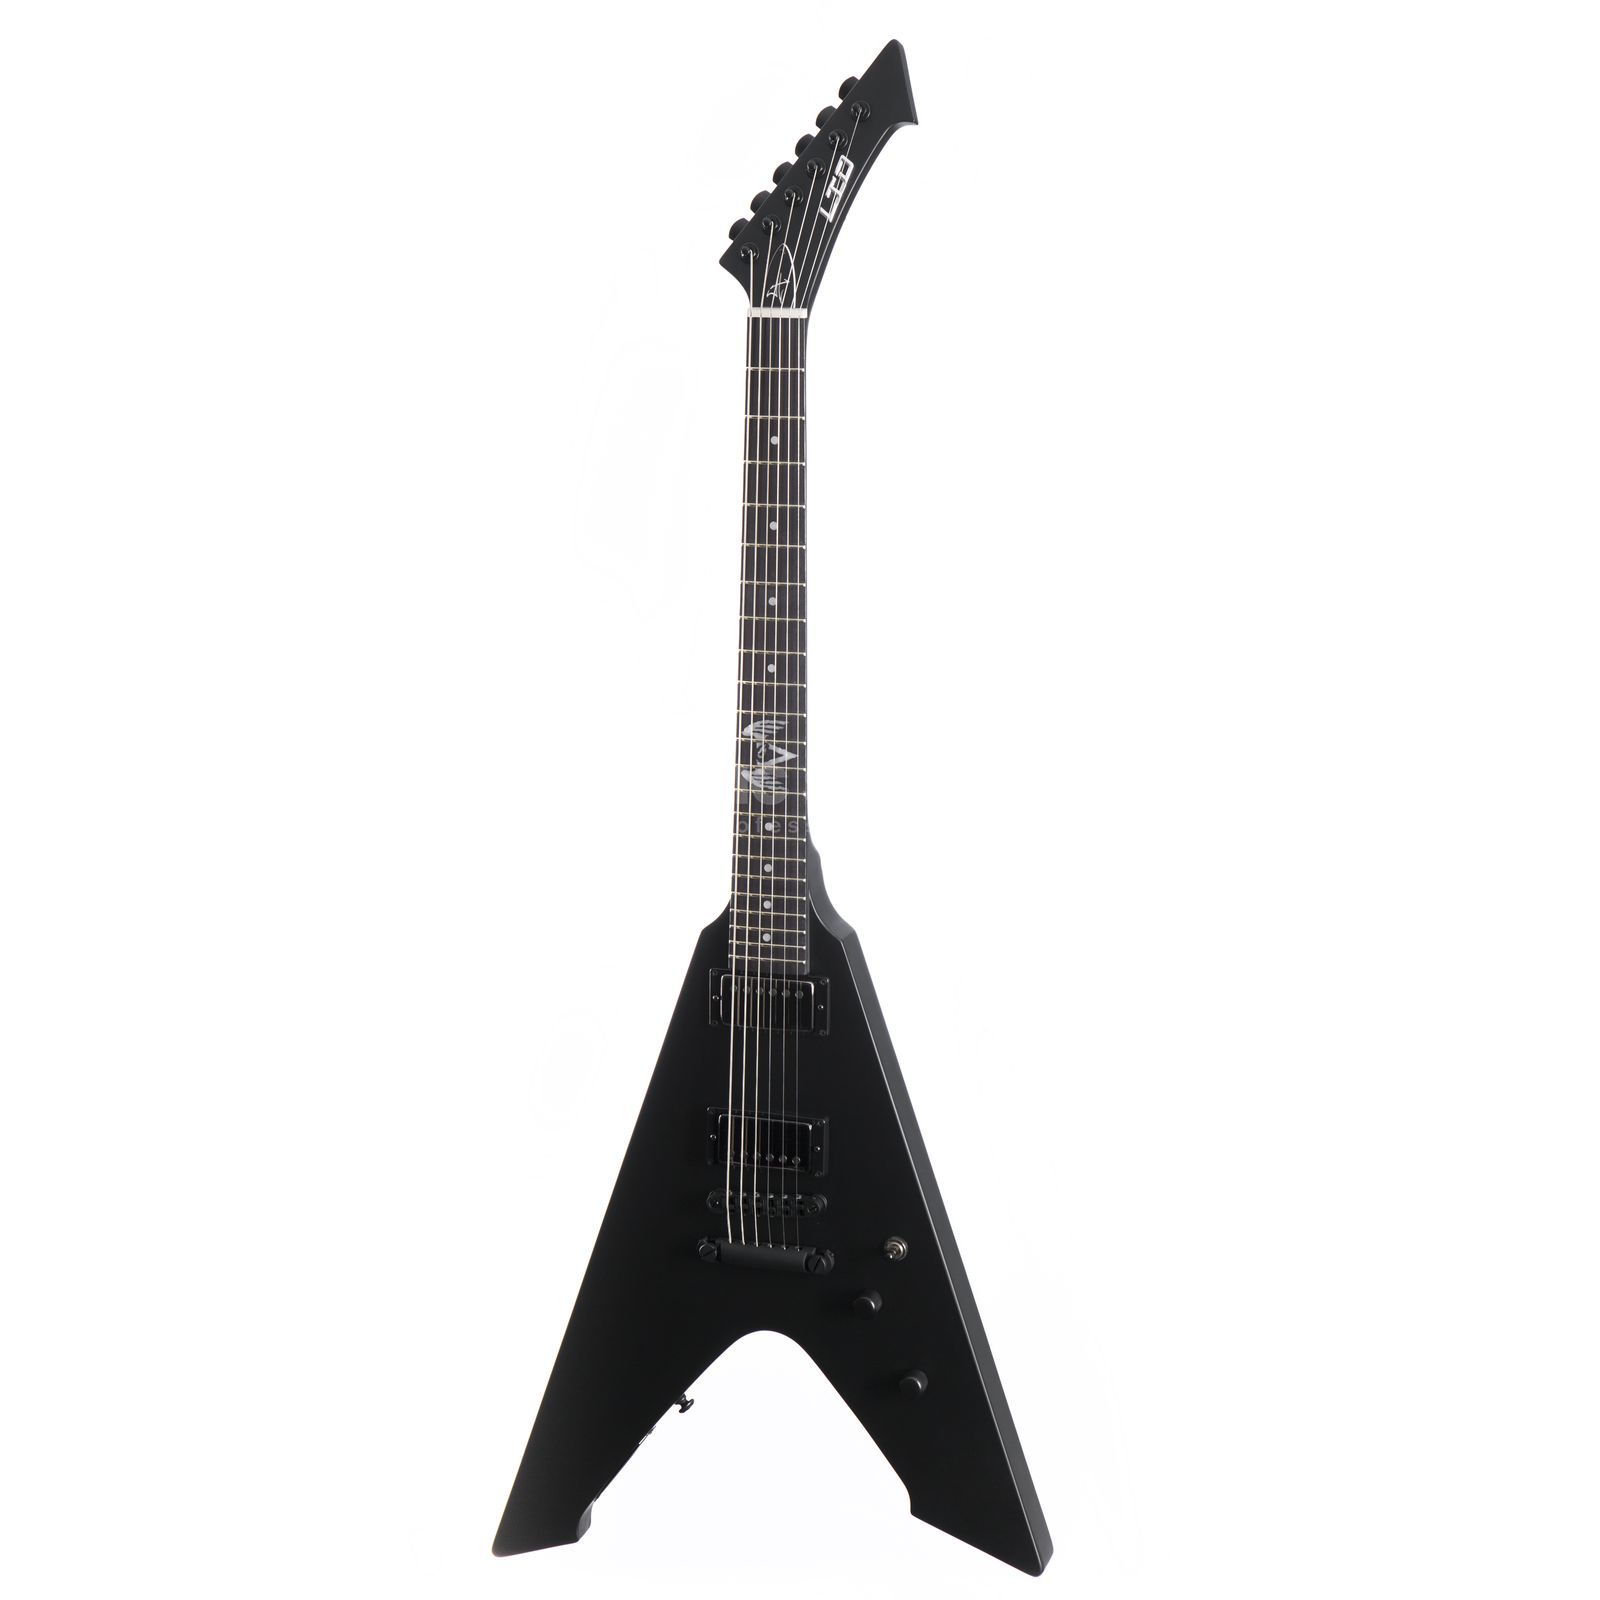 ESP LTD Vulture Black Satin James Hetfield Signature Image du produit